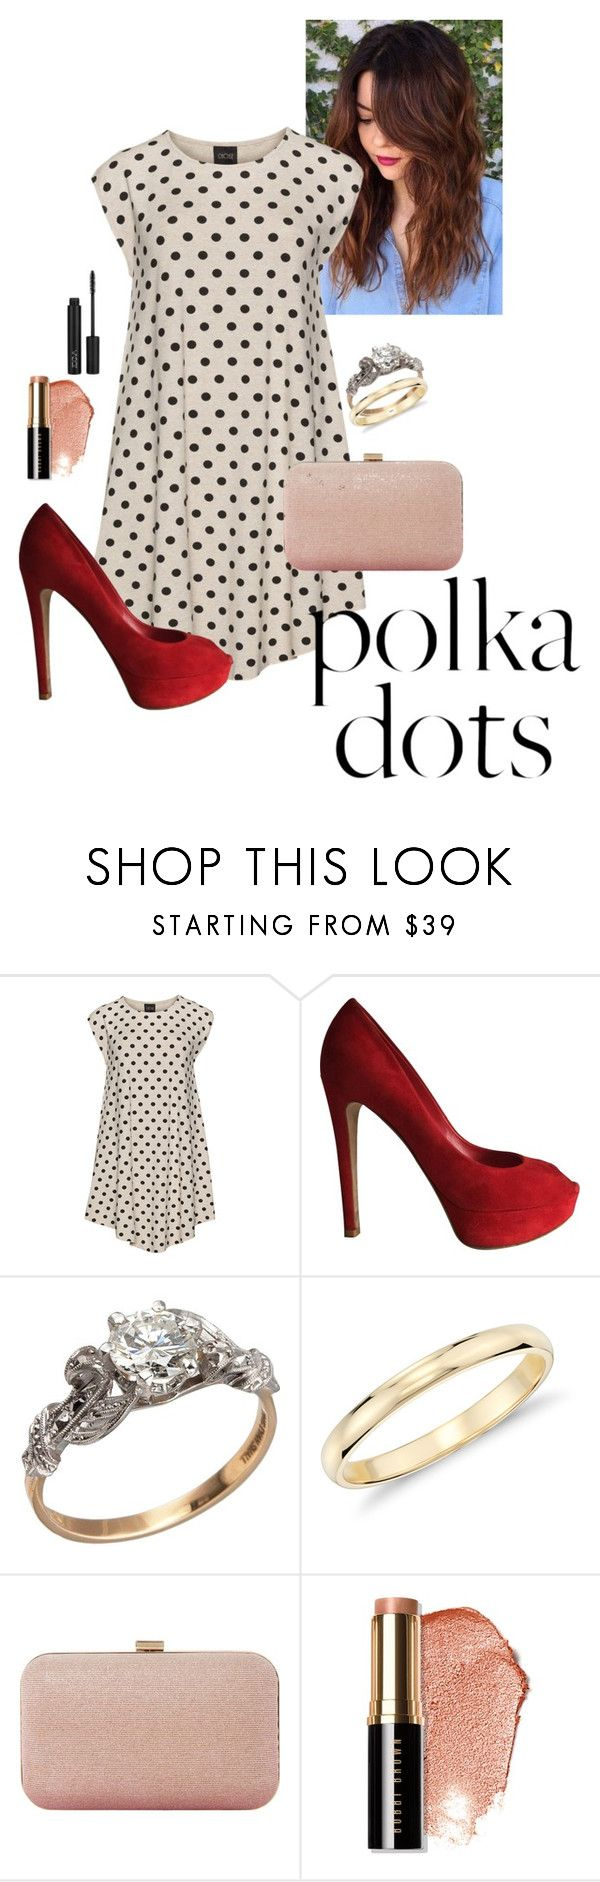 """""""polka dots dress"""" by lola-guadalupe-delgado ❤ liked on Polyvore featuring Choise, Christian Dior, Blue Nile, Dune, Bobbi Brown Cosmetics and plus size dresses"""